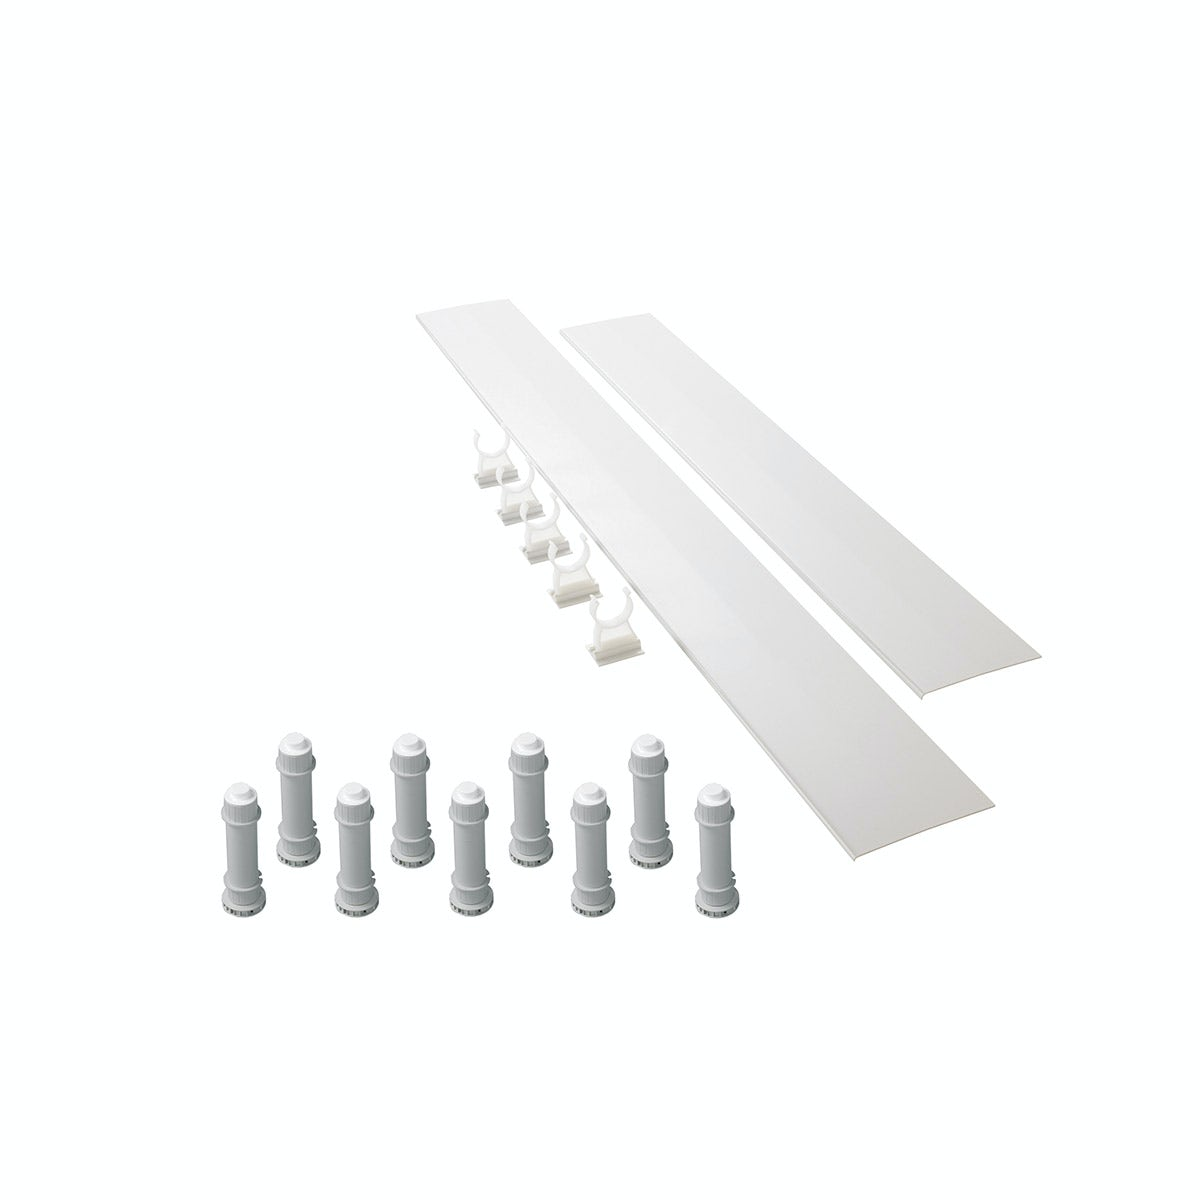 Mira Flight square and rectangle riser kit up to 900mm